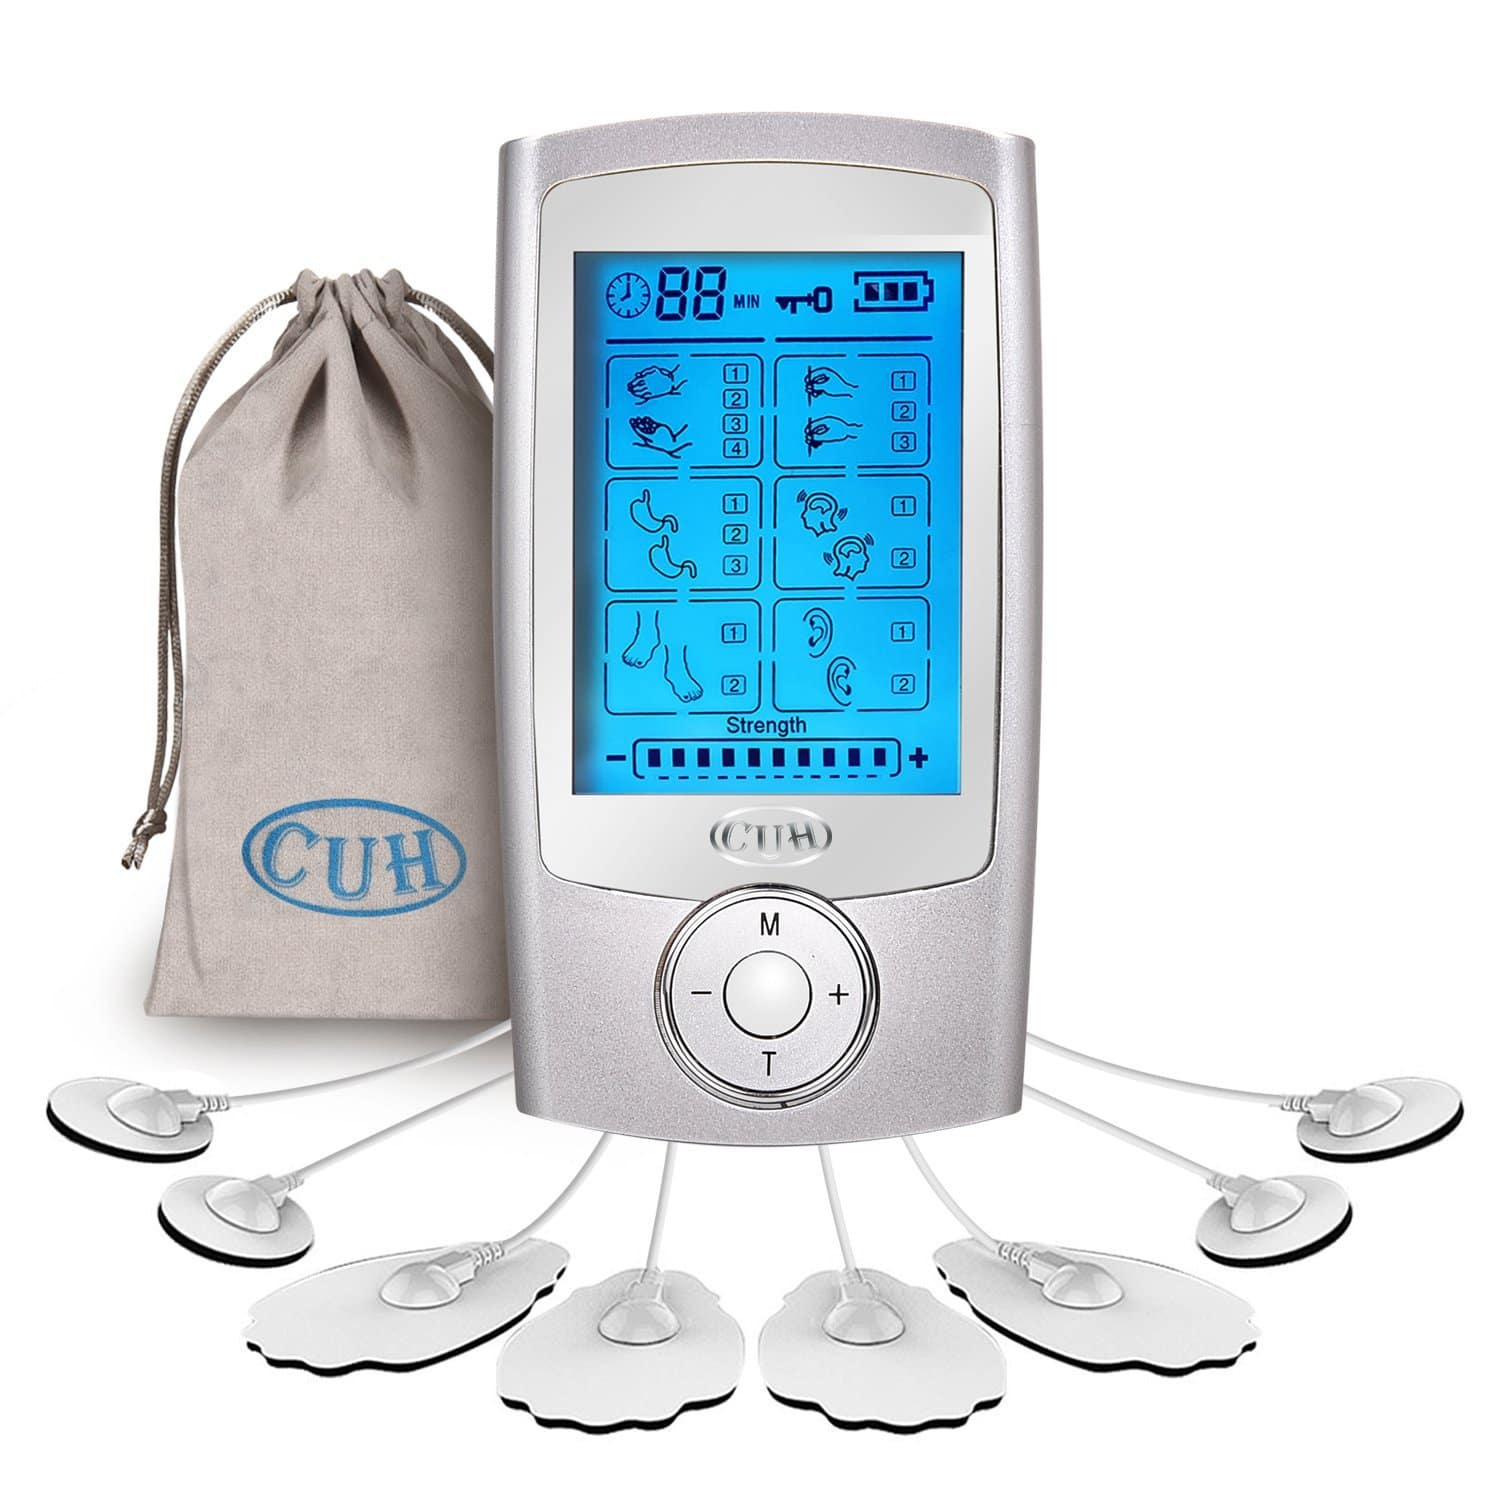 16 Modes Rechargeable TENS Unit Portable Electronic Pulse Massager for Pain Relief $20.29